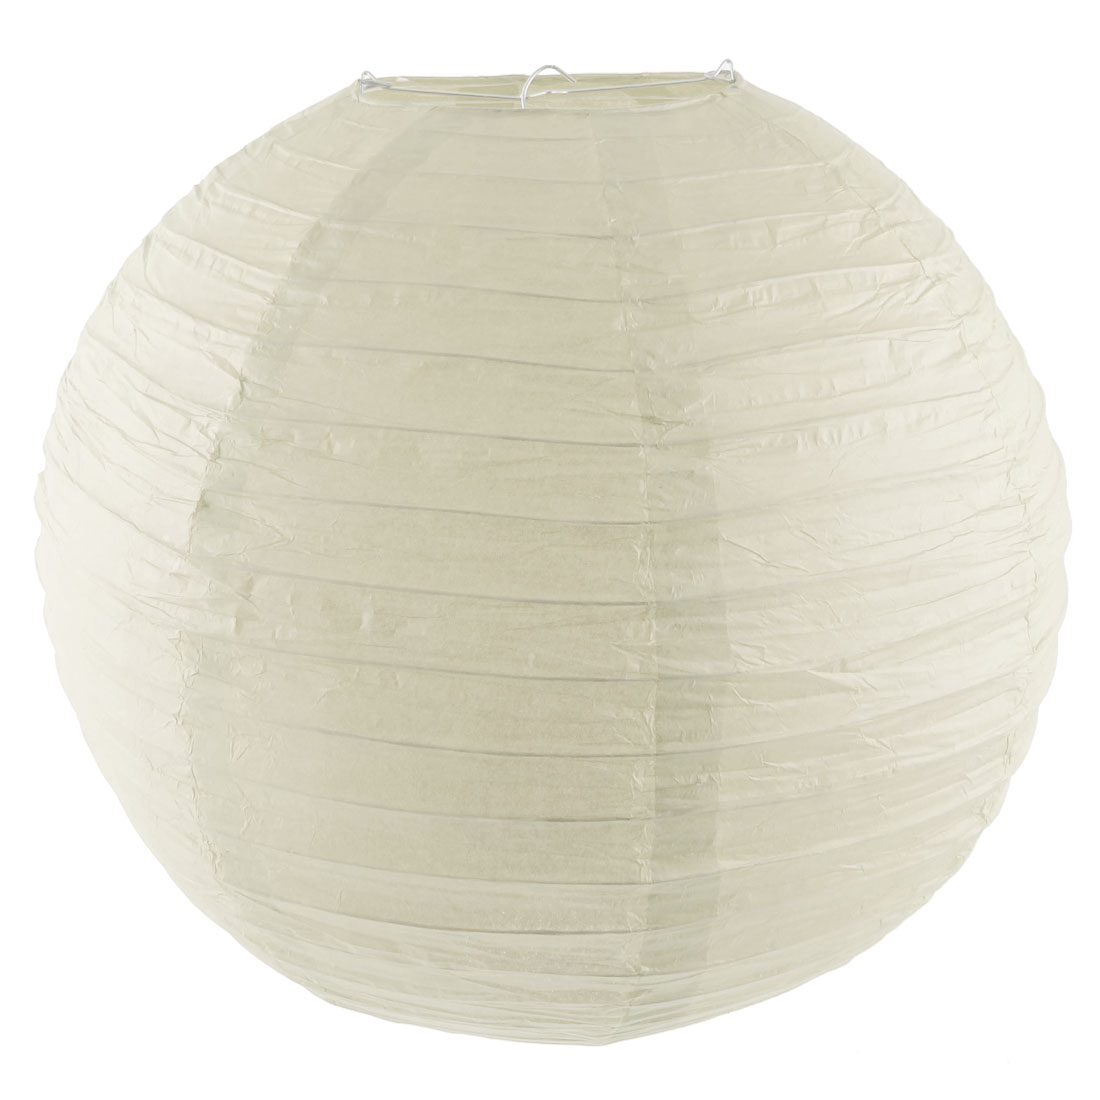 Christmas Party Paper Round Handmade DIY Decor Lantern Off White 16 Inch Dia